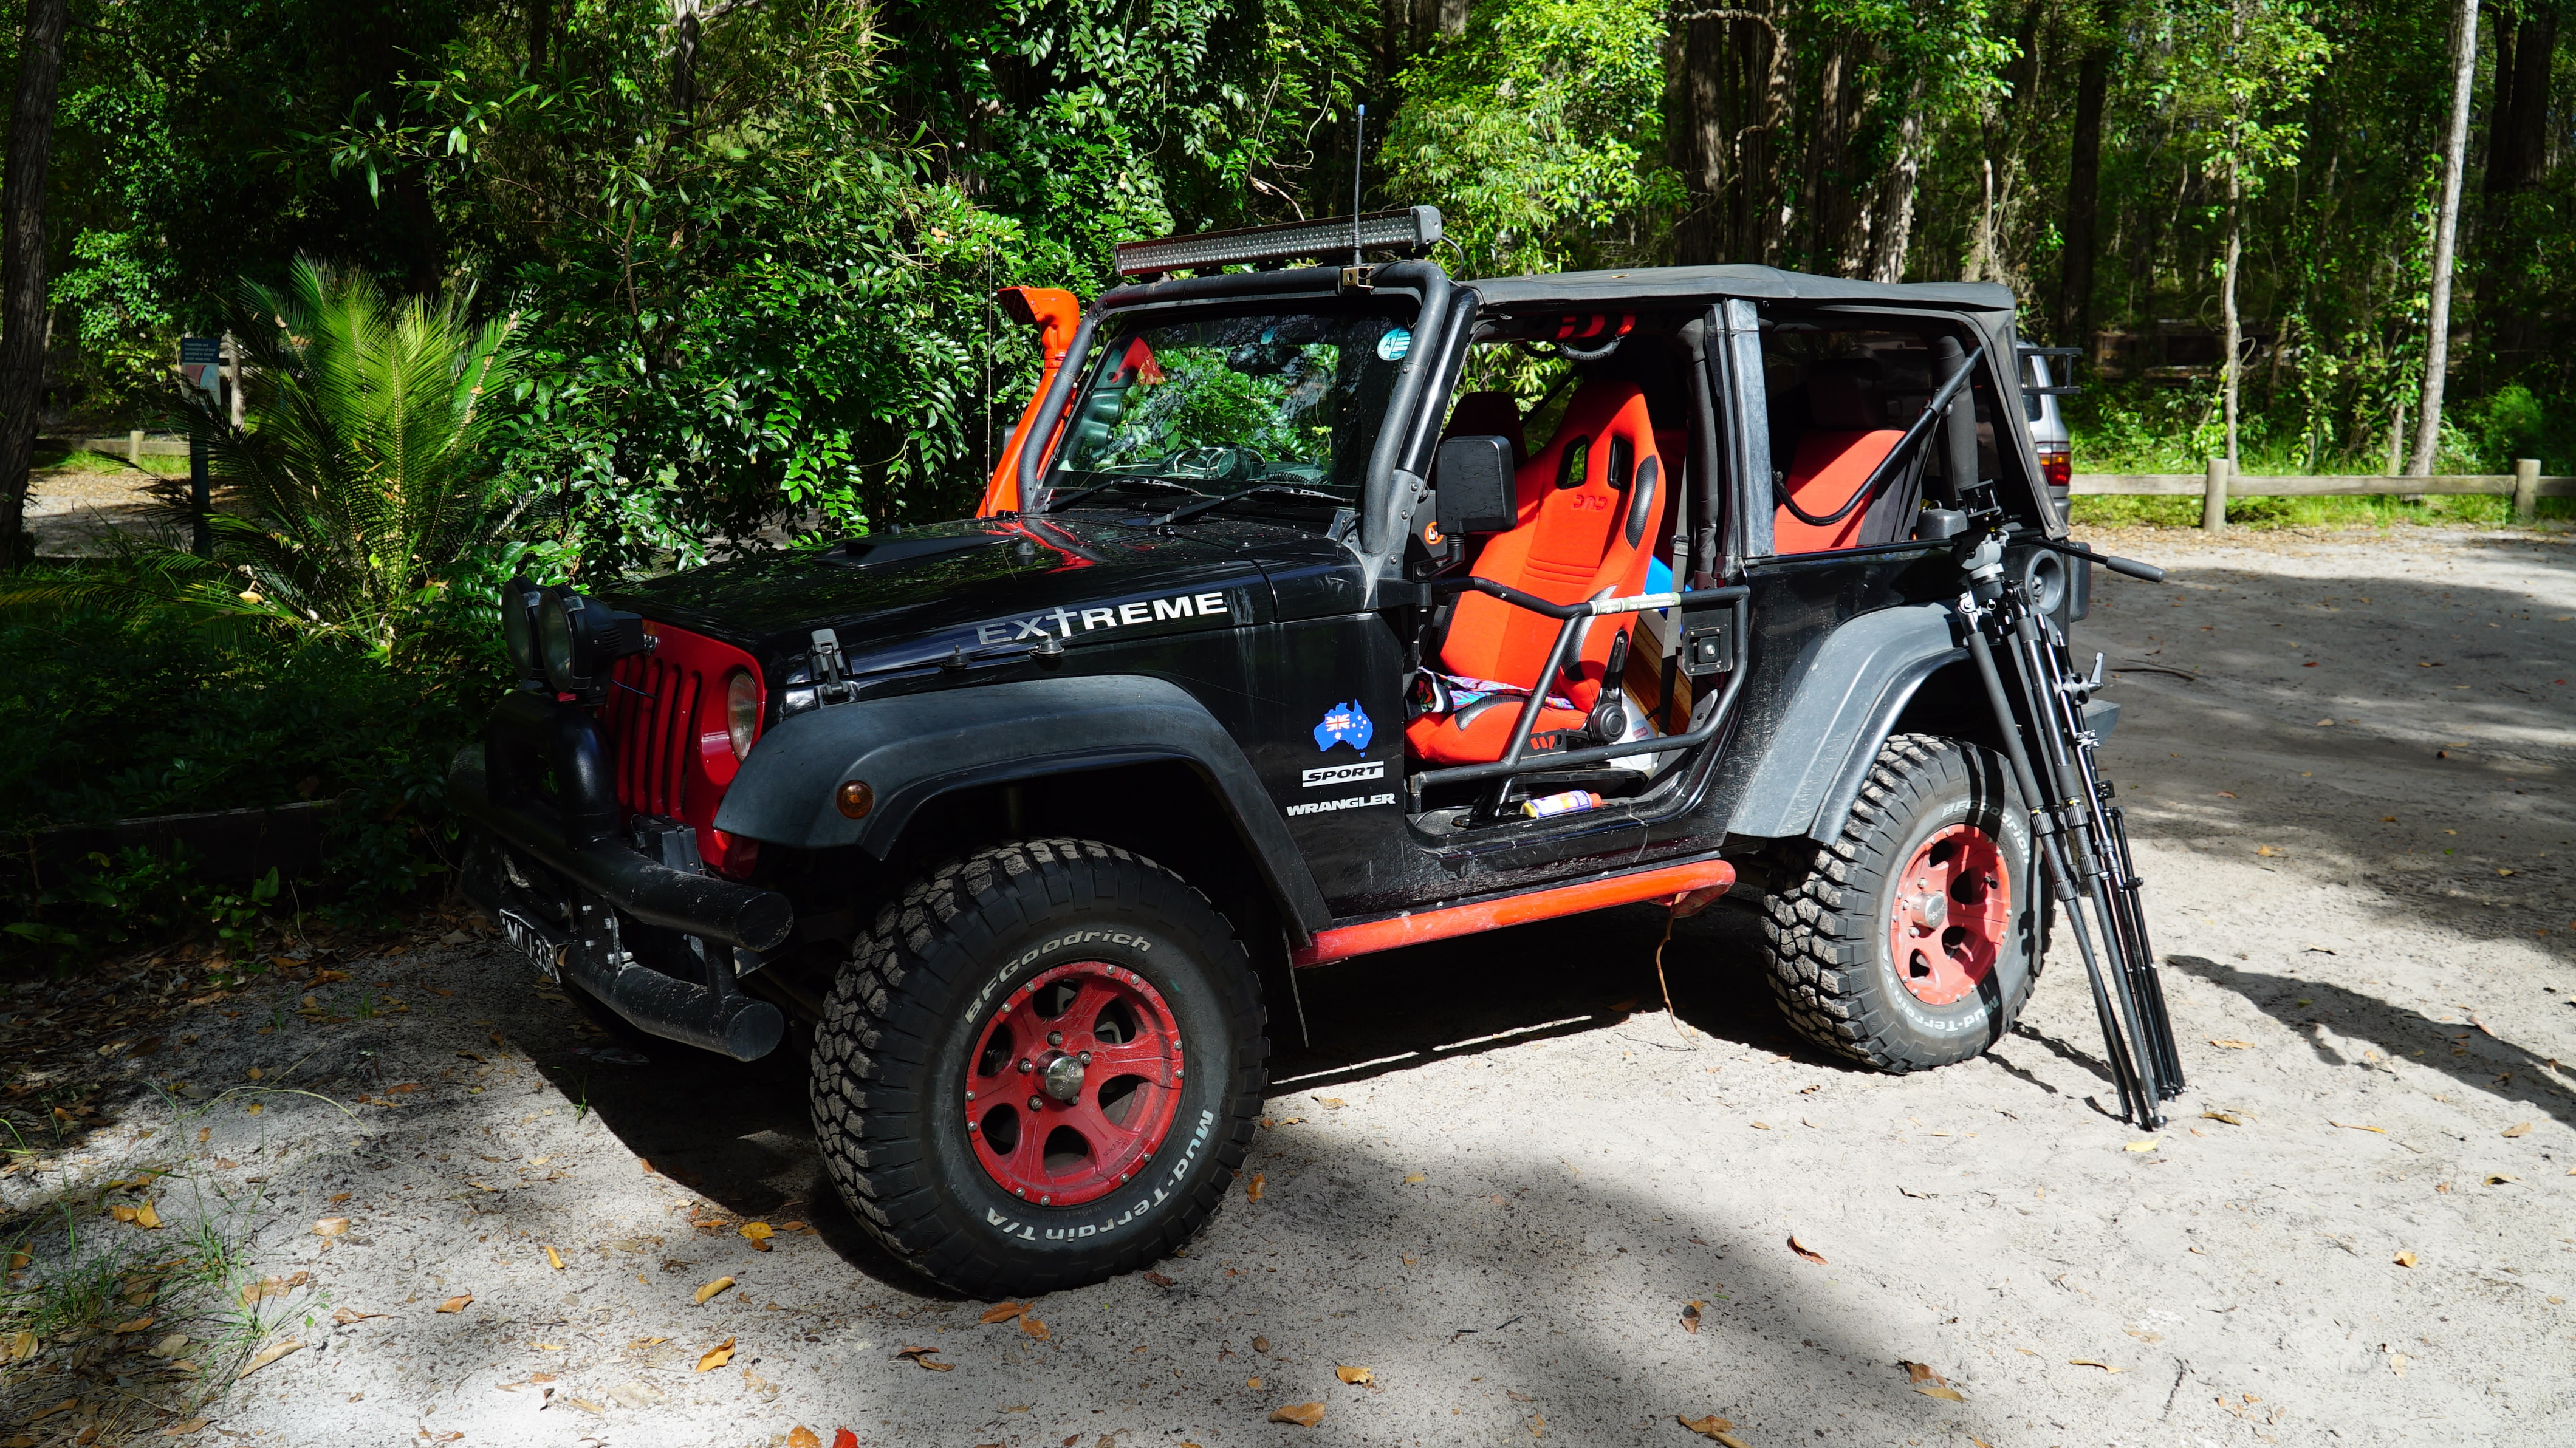 black Jeep Wrangler SUV in forest